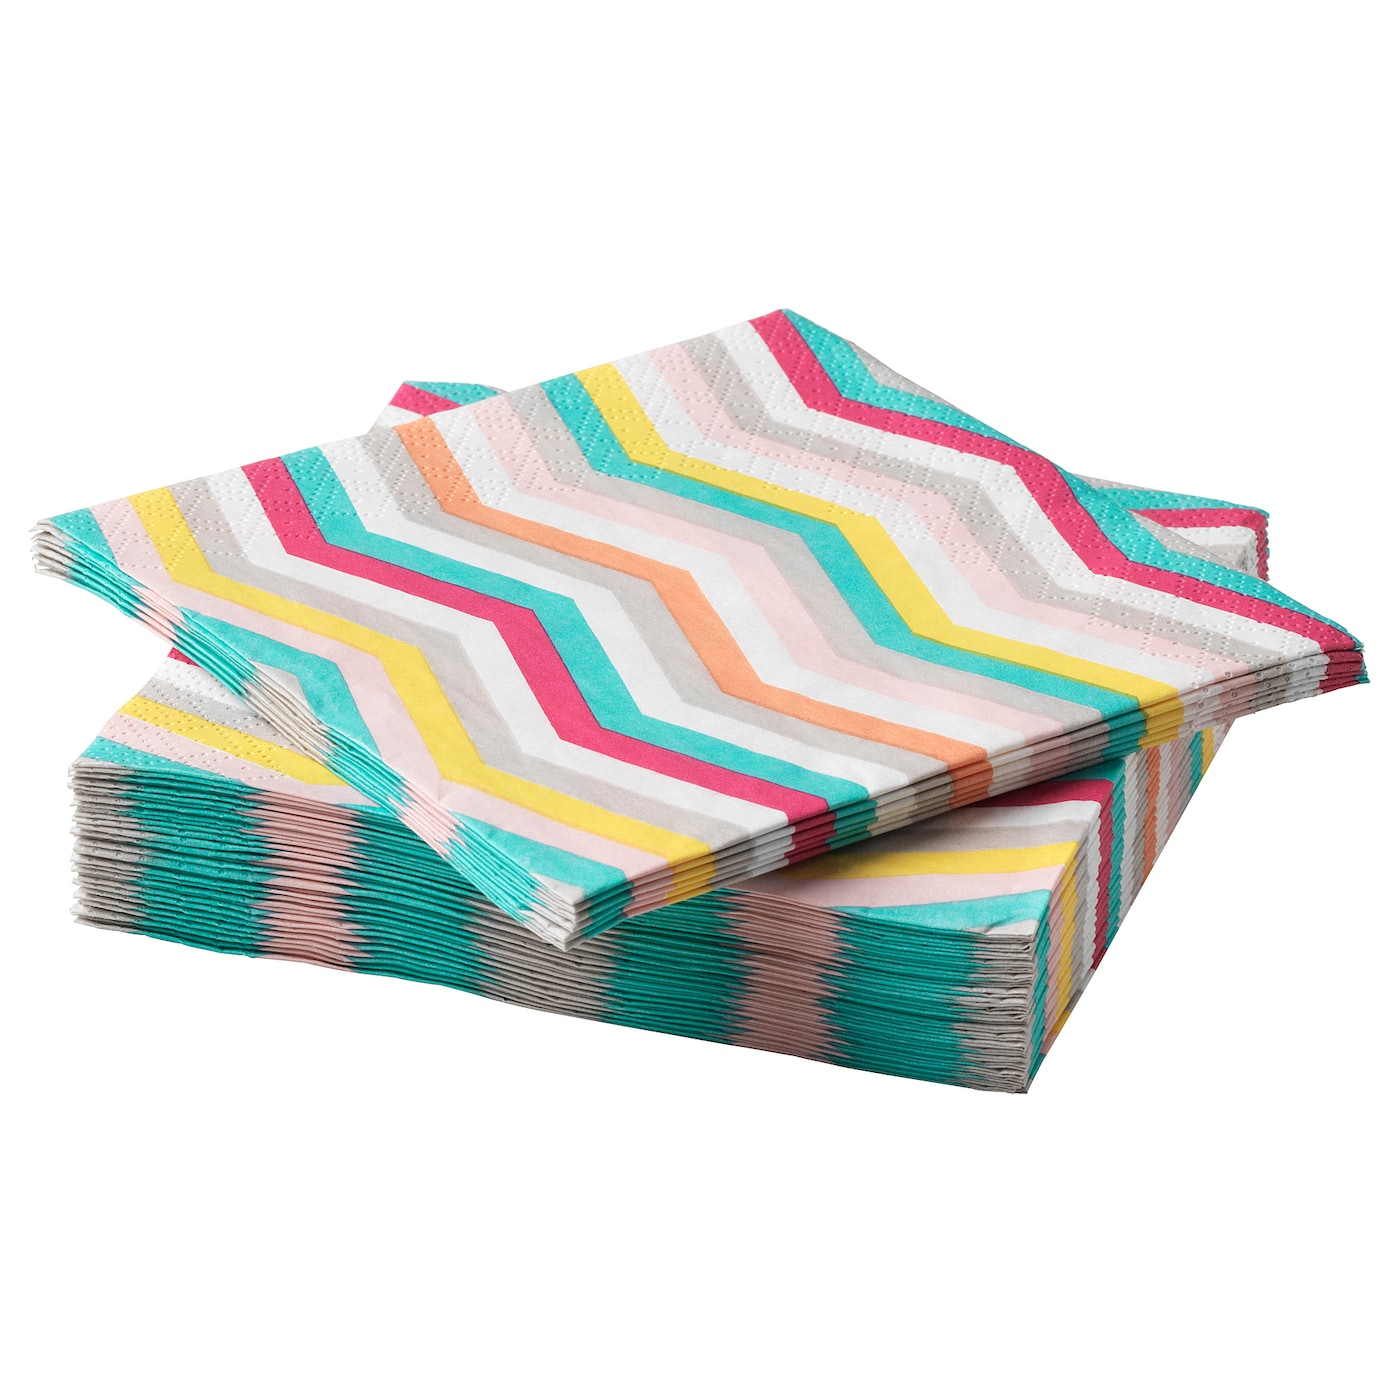 IKEA SOMMAR 2018 paper napkin The napkin is highly absorbent because it's made of three-ply paper.